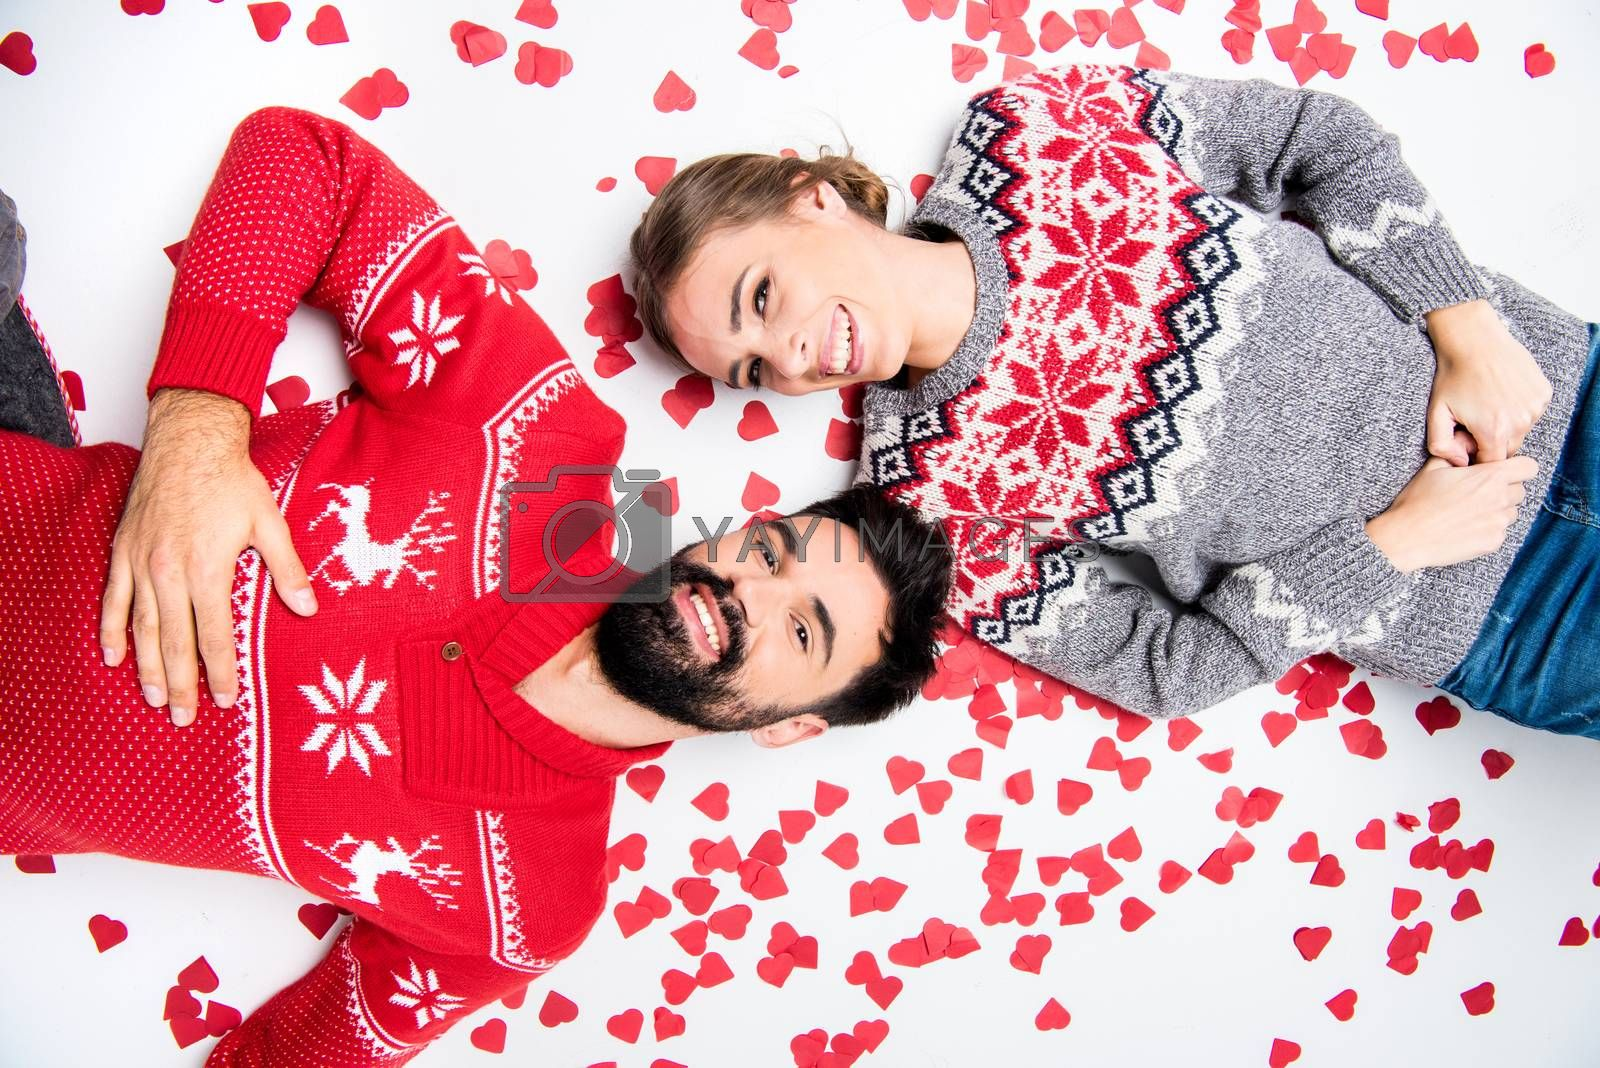 Royalty free image of couple lying with hearts by LightFieldStudios